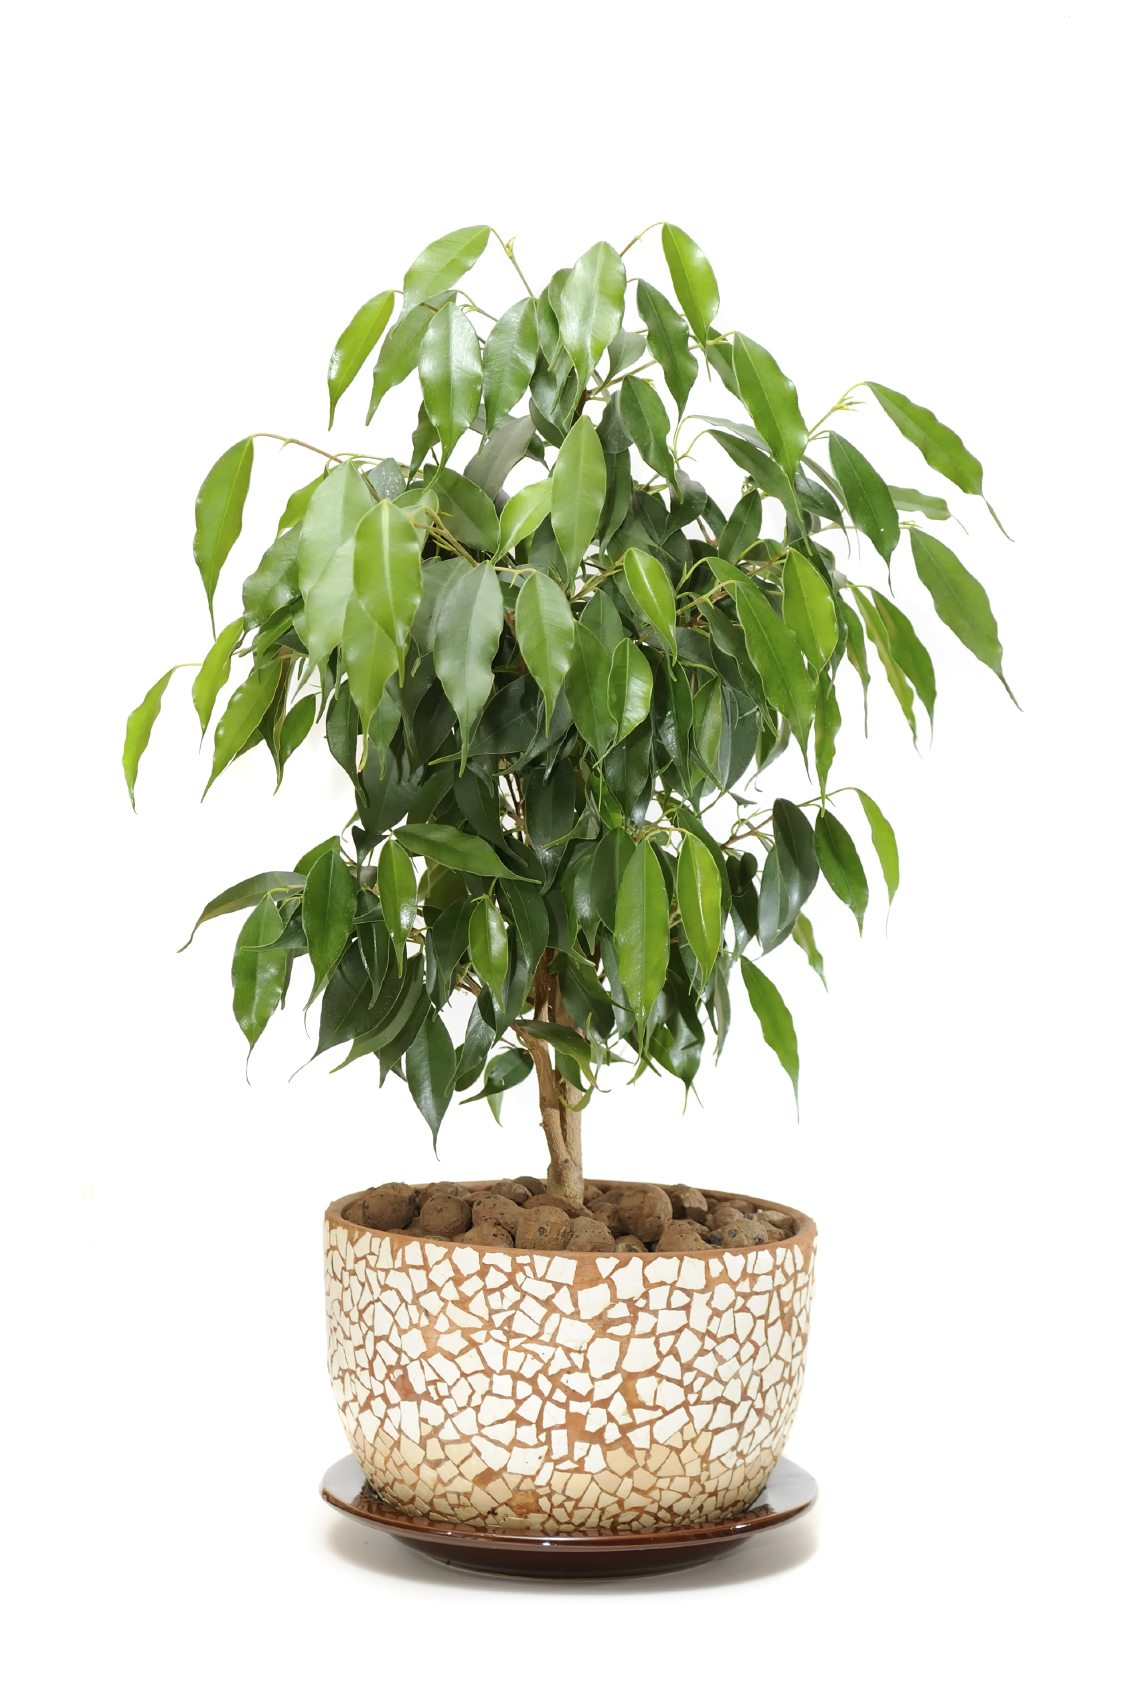 Ficus Houseplants How To Care For A Ficus Tree